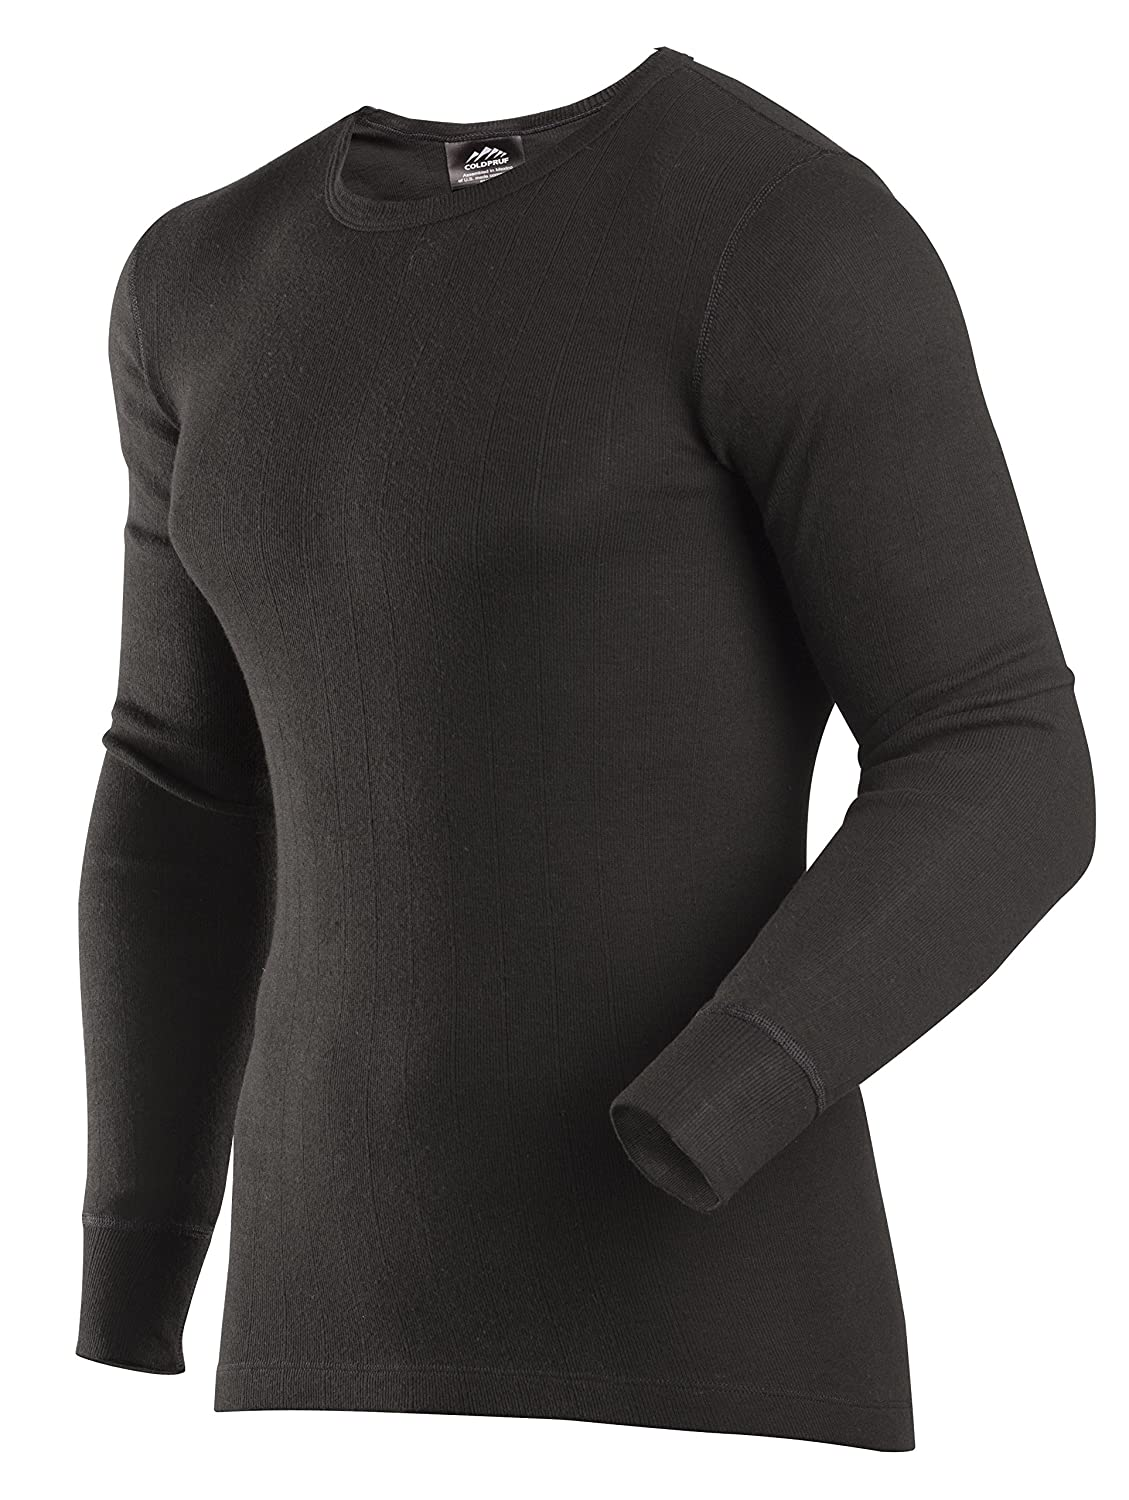 ColdPruf Men's Enthusiast Single Layer Long Sleeve Crew Neck Base Layer Top ColdPruf Baselayer 560165